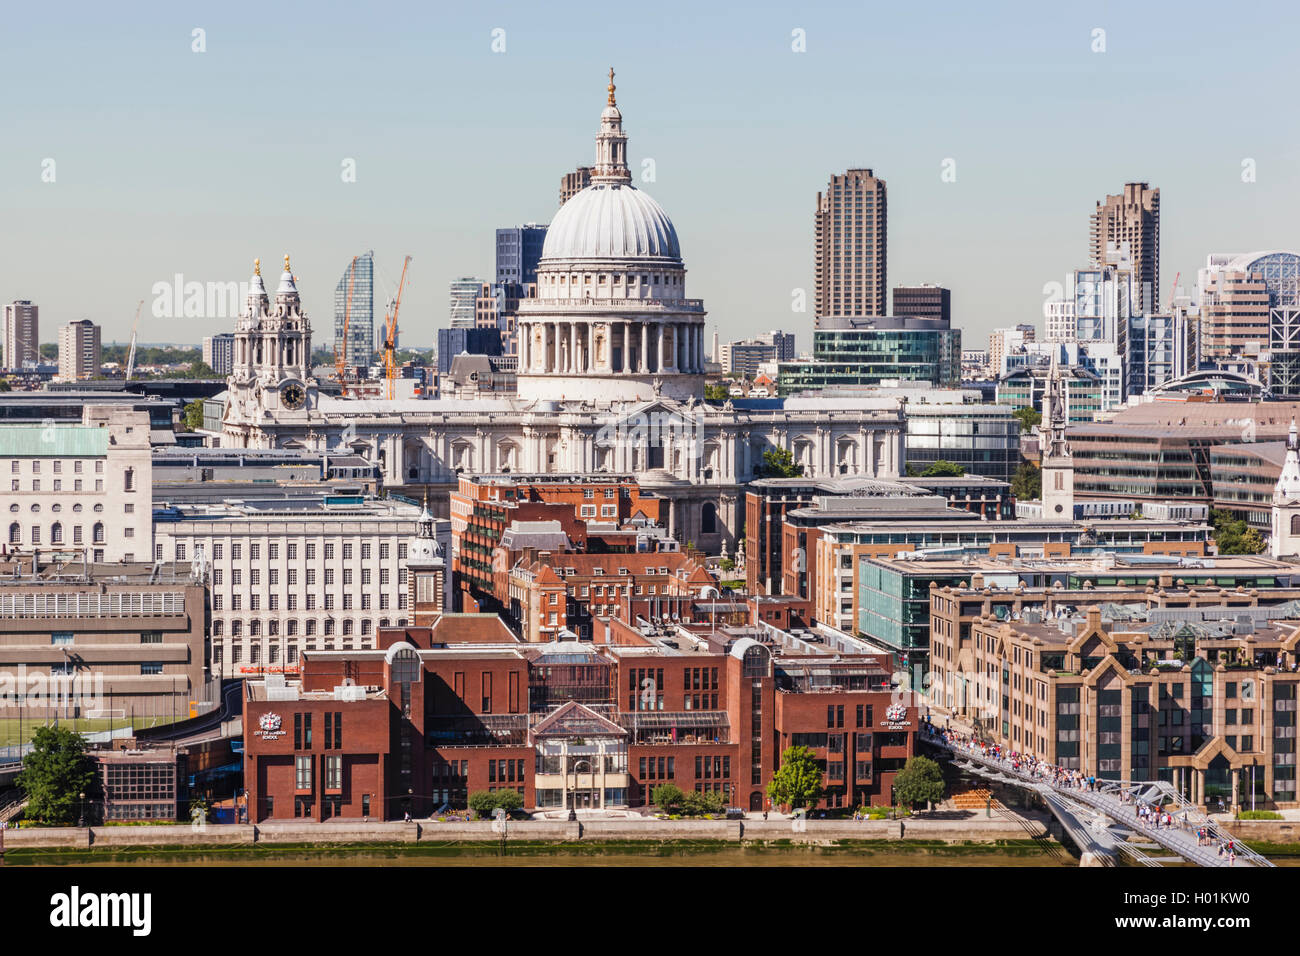 England, London, Aerial View of St Paul's Cathedral and River Thames - Stock Image